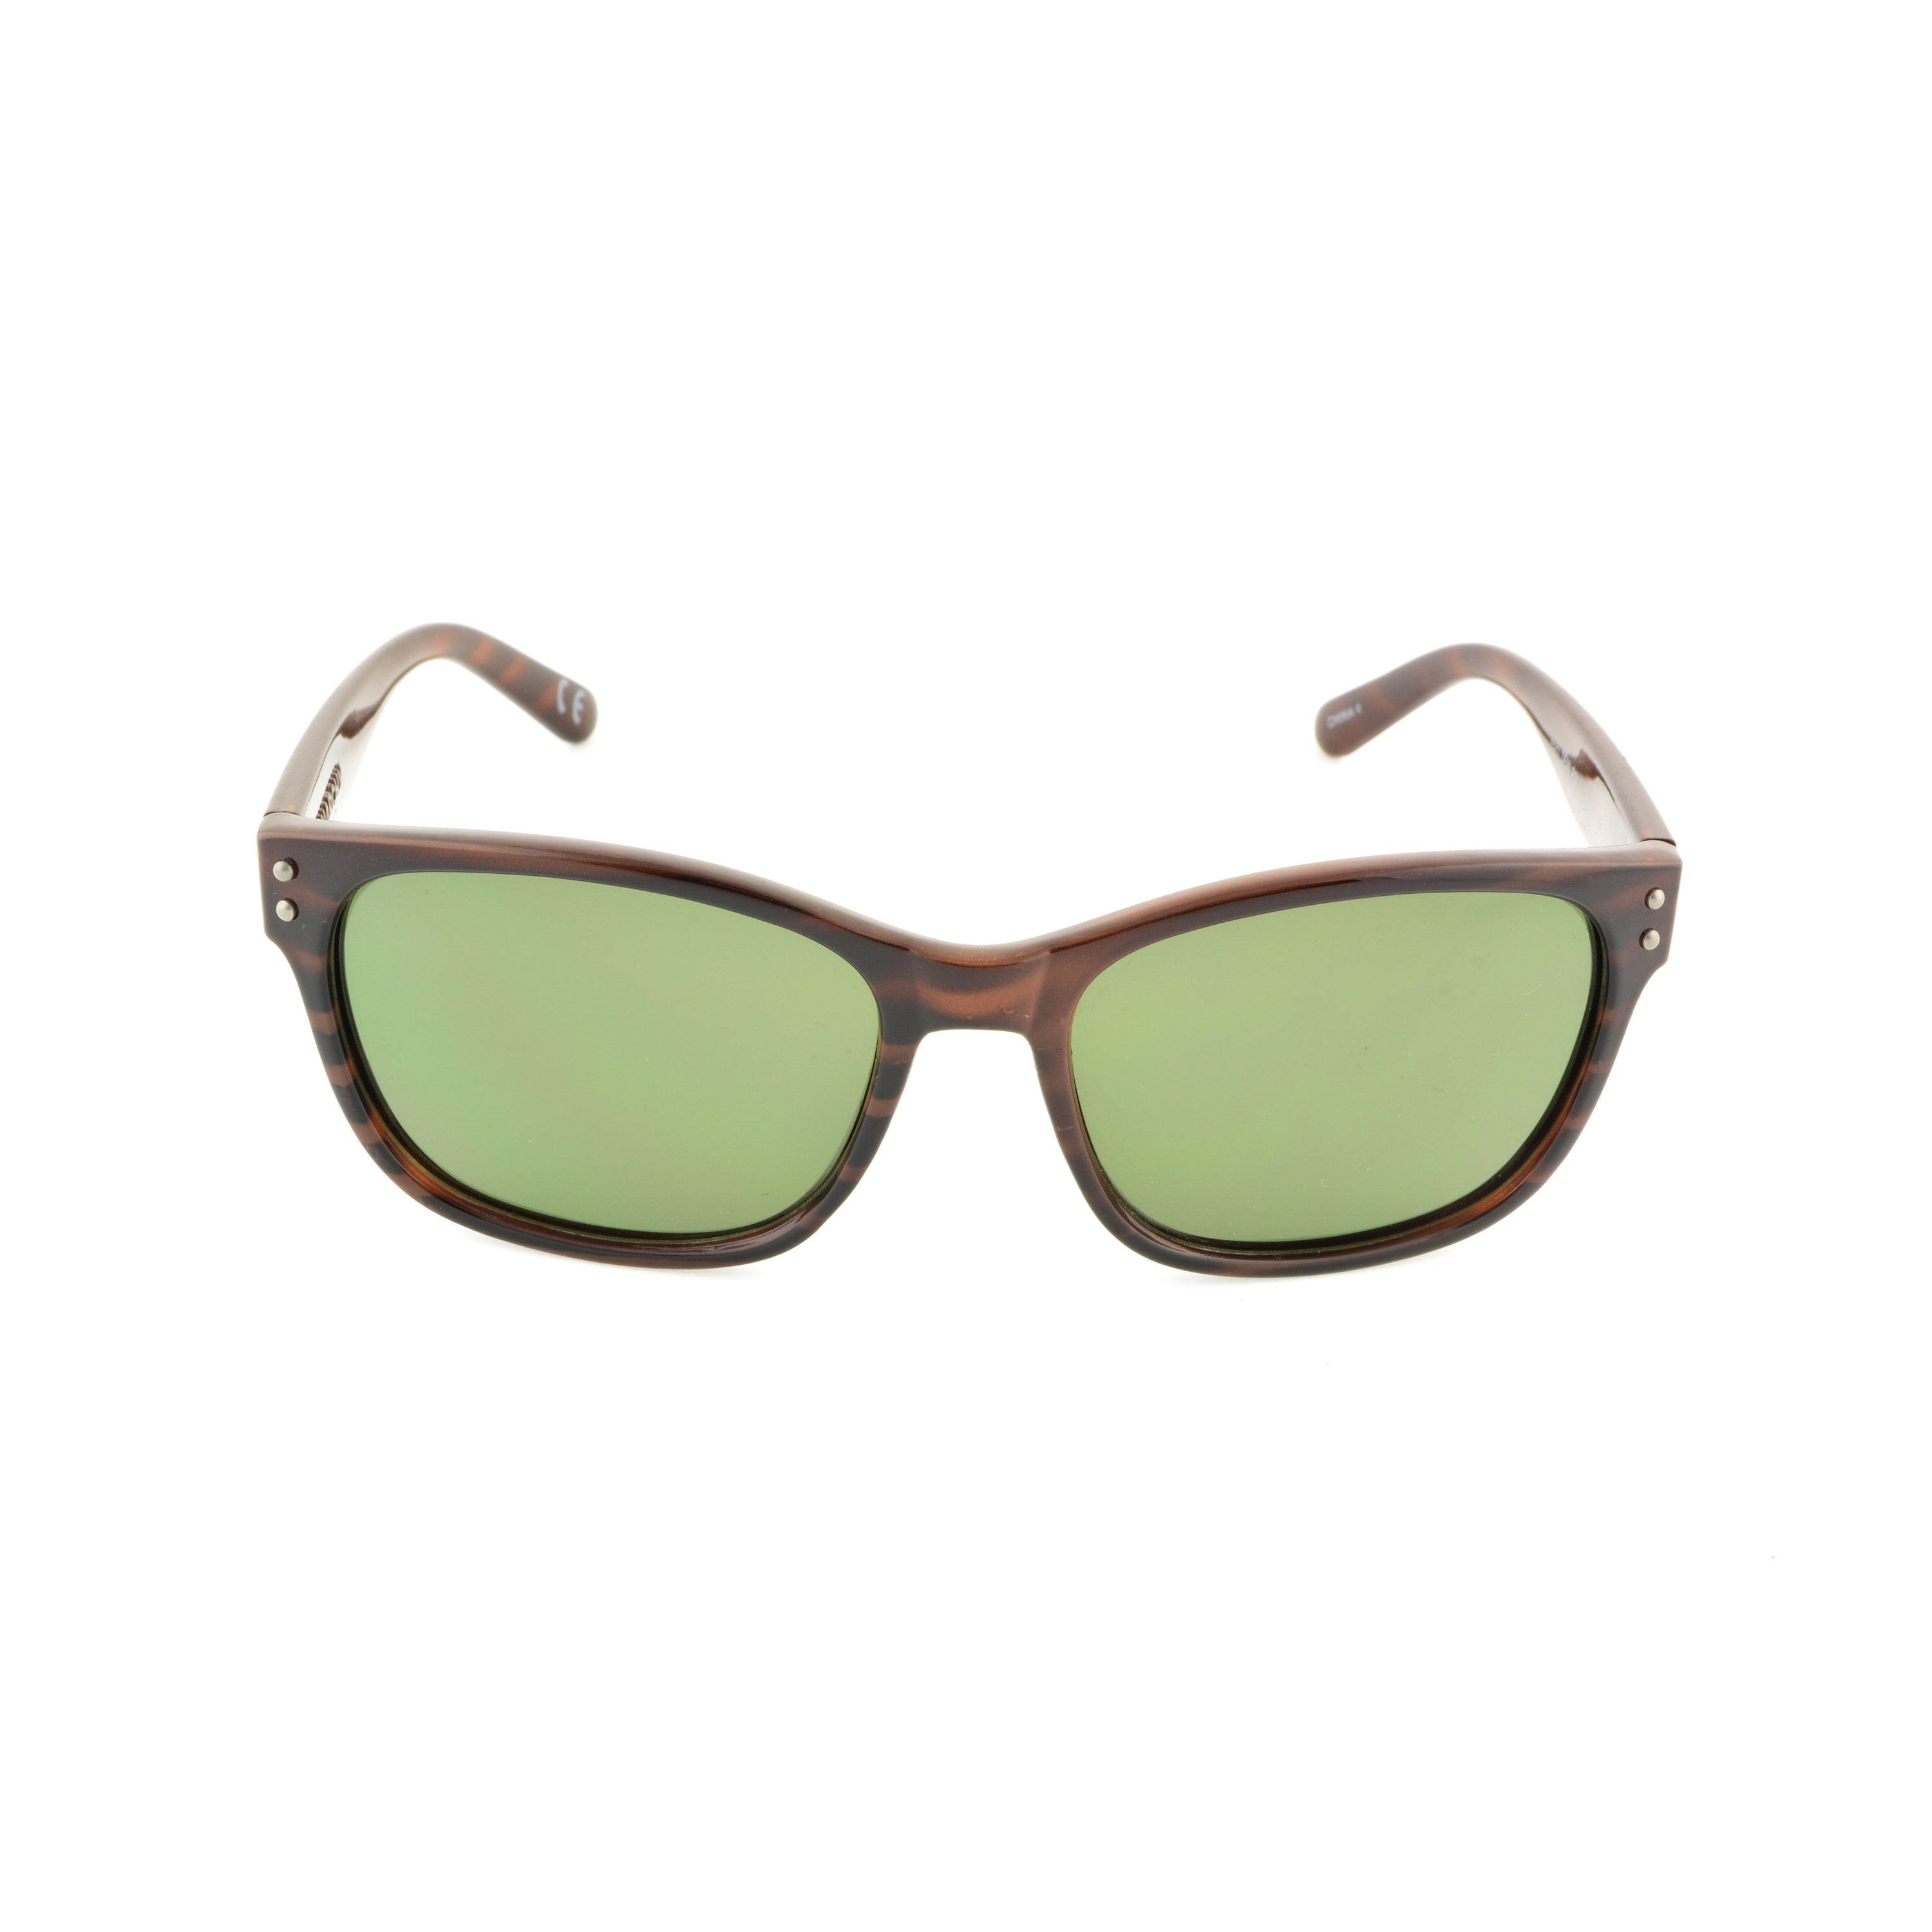 dfff09828358e Shop Anarchy Unisex  Vert  Polarized Sunglasses - Free Shipping On Orders  Over  45 - Overstock - 9176786